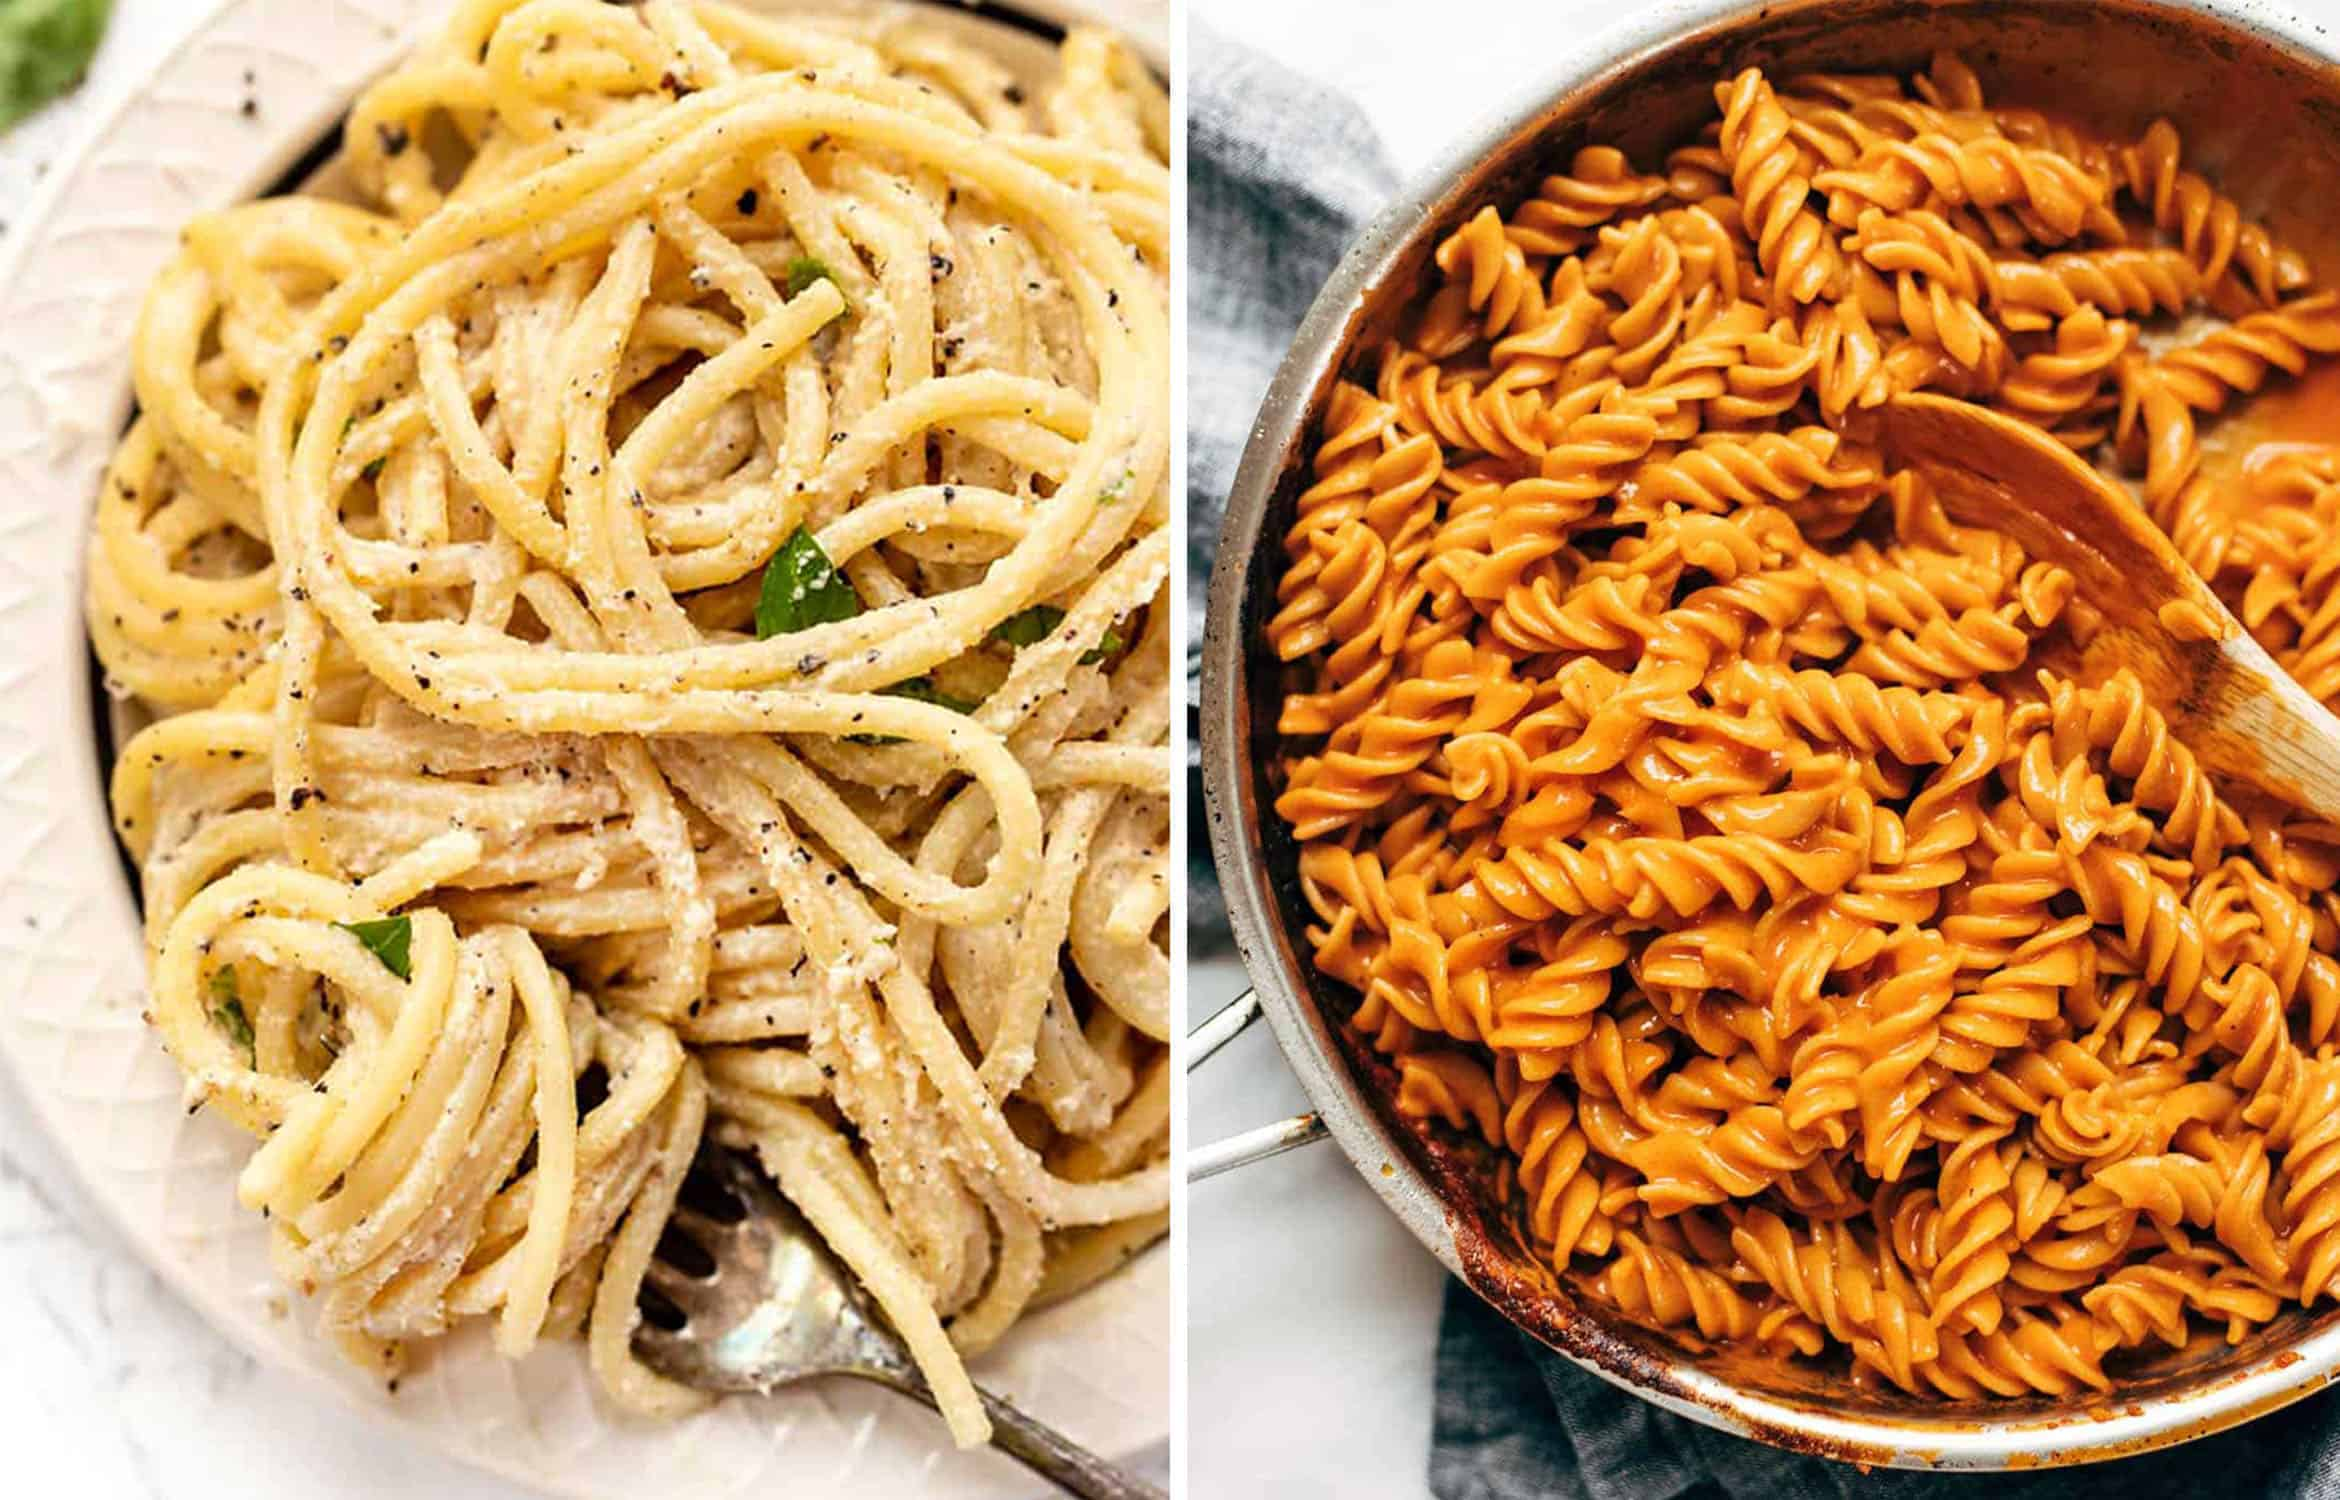 Spaghetti with cacio e pepe in a white bowl by Simply Quinoa and Fusilli and red vodka sauce in a skillet by Pinch of Yum